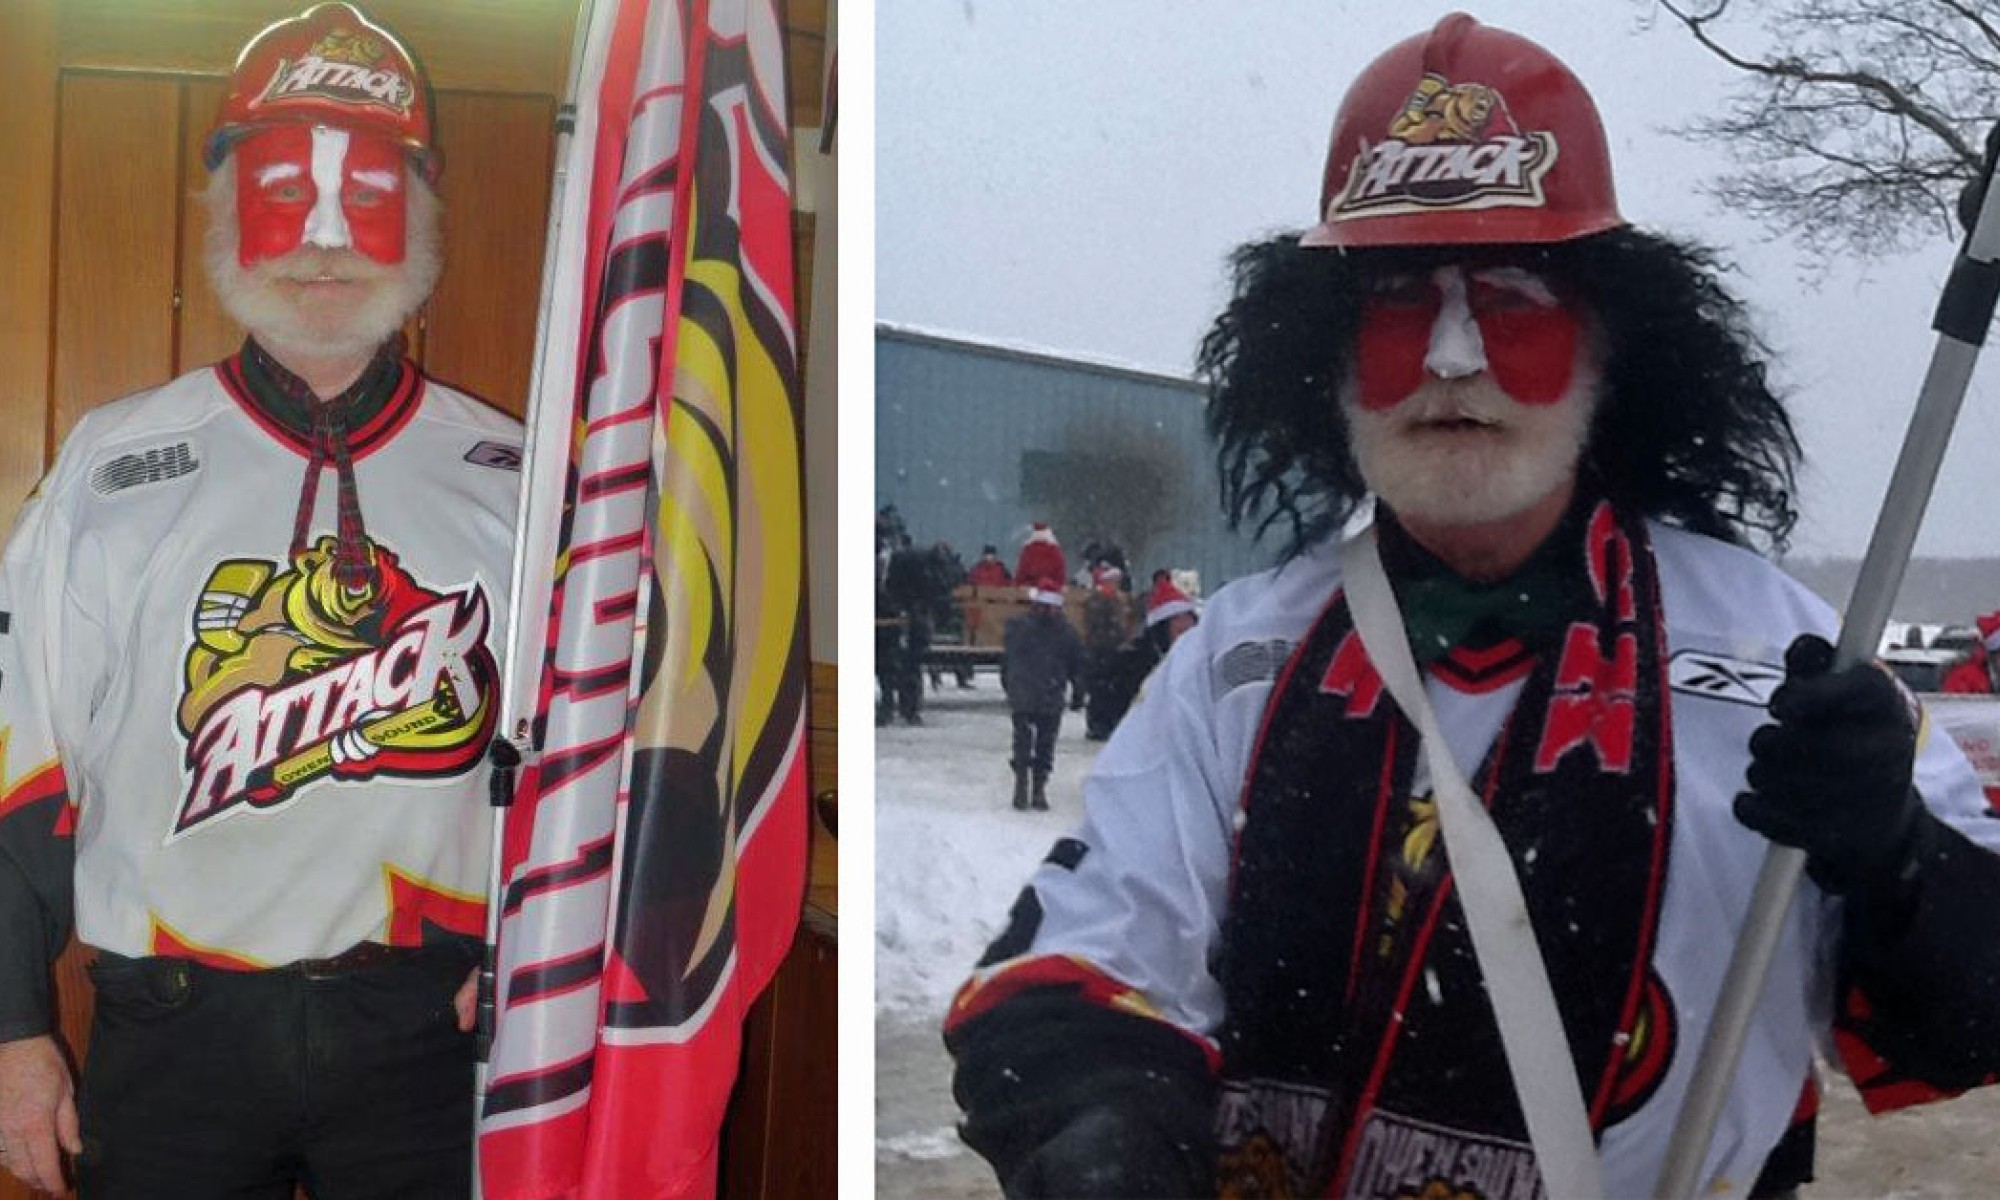 Keith Davidson dressed up for an Owen Sound Attack Hockey game